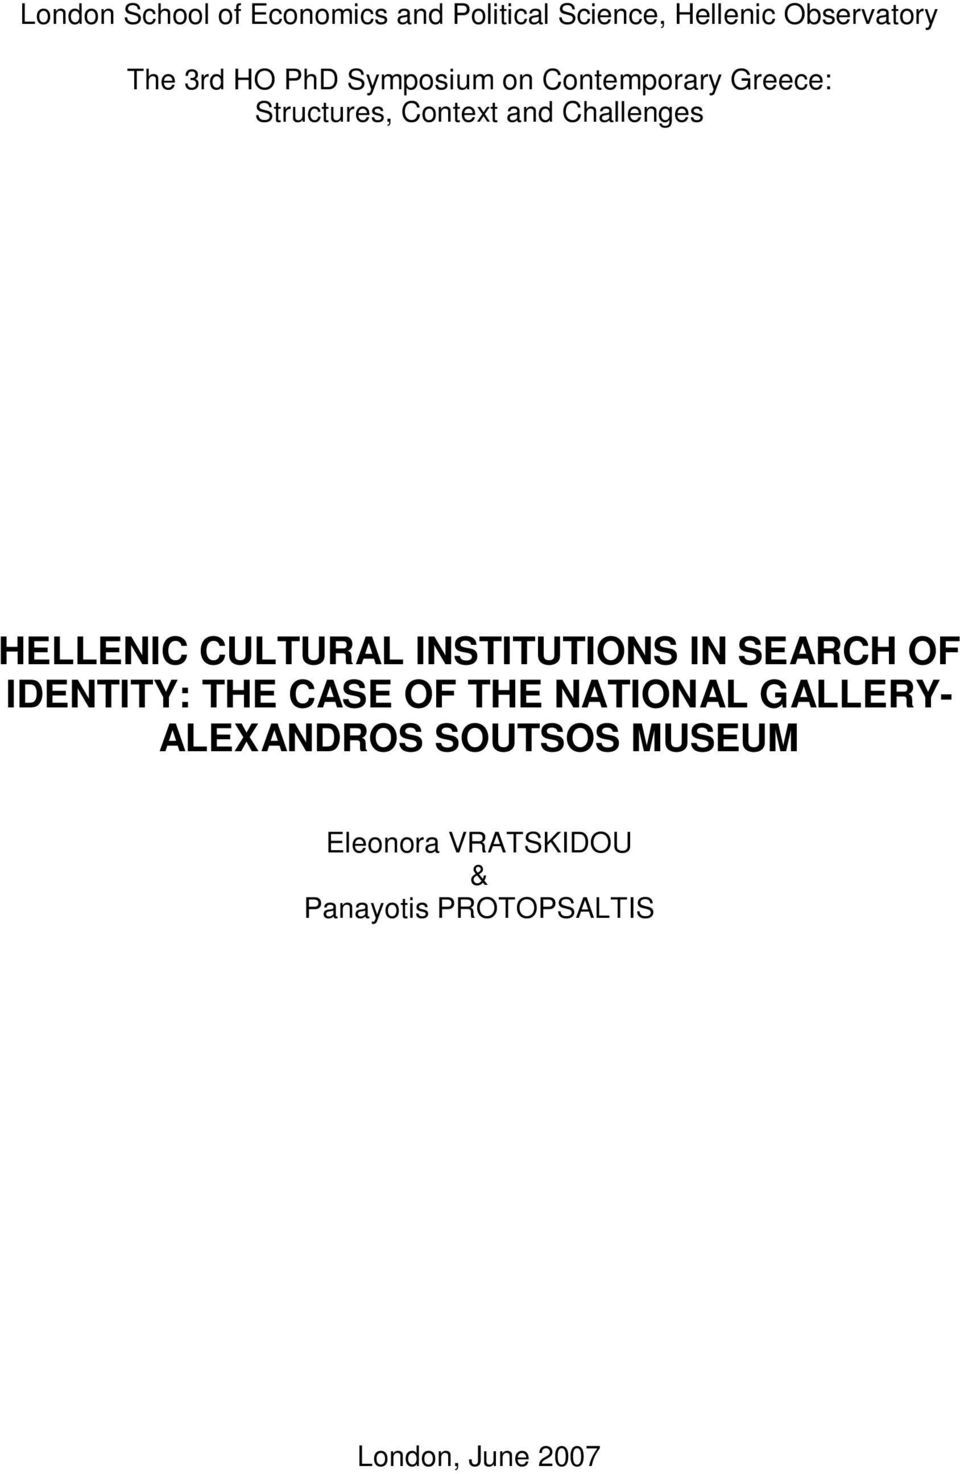 CULTURAL INSTITUTIONS IN SEARCH OF IDENTITY: THE CASE OF THE NATIONAL GALLERY-